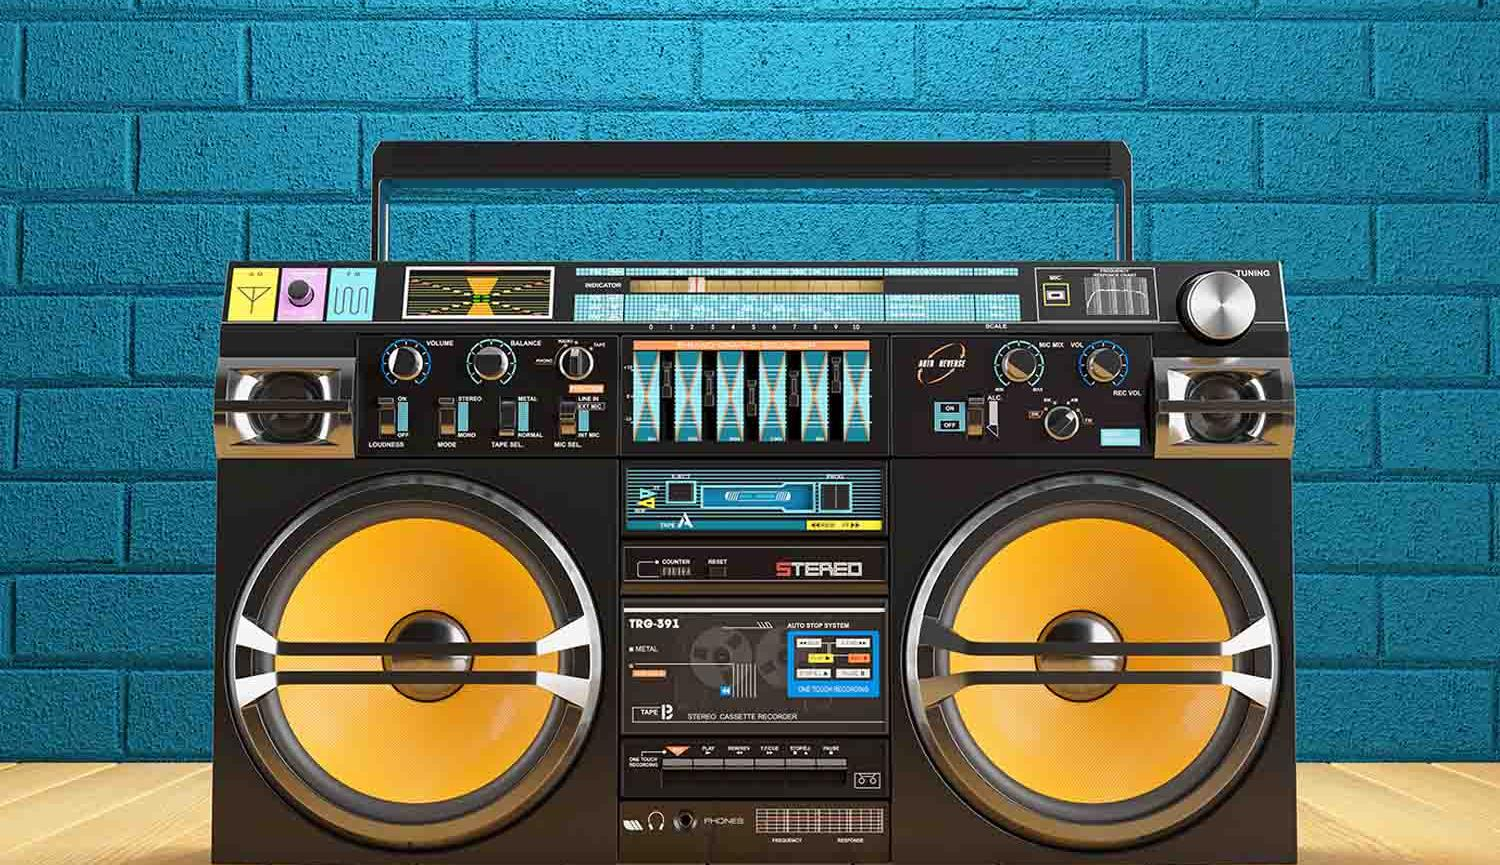 Mixtape Timebop image of ghetto blaster